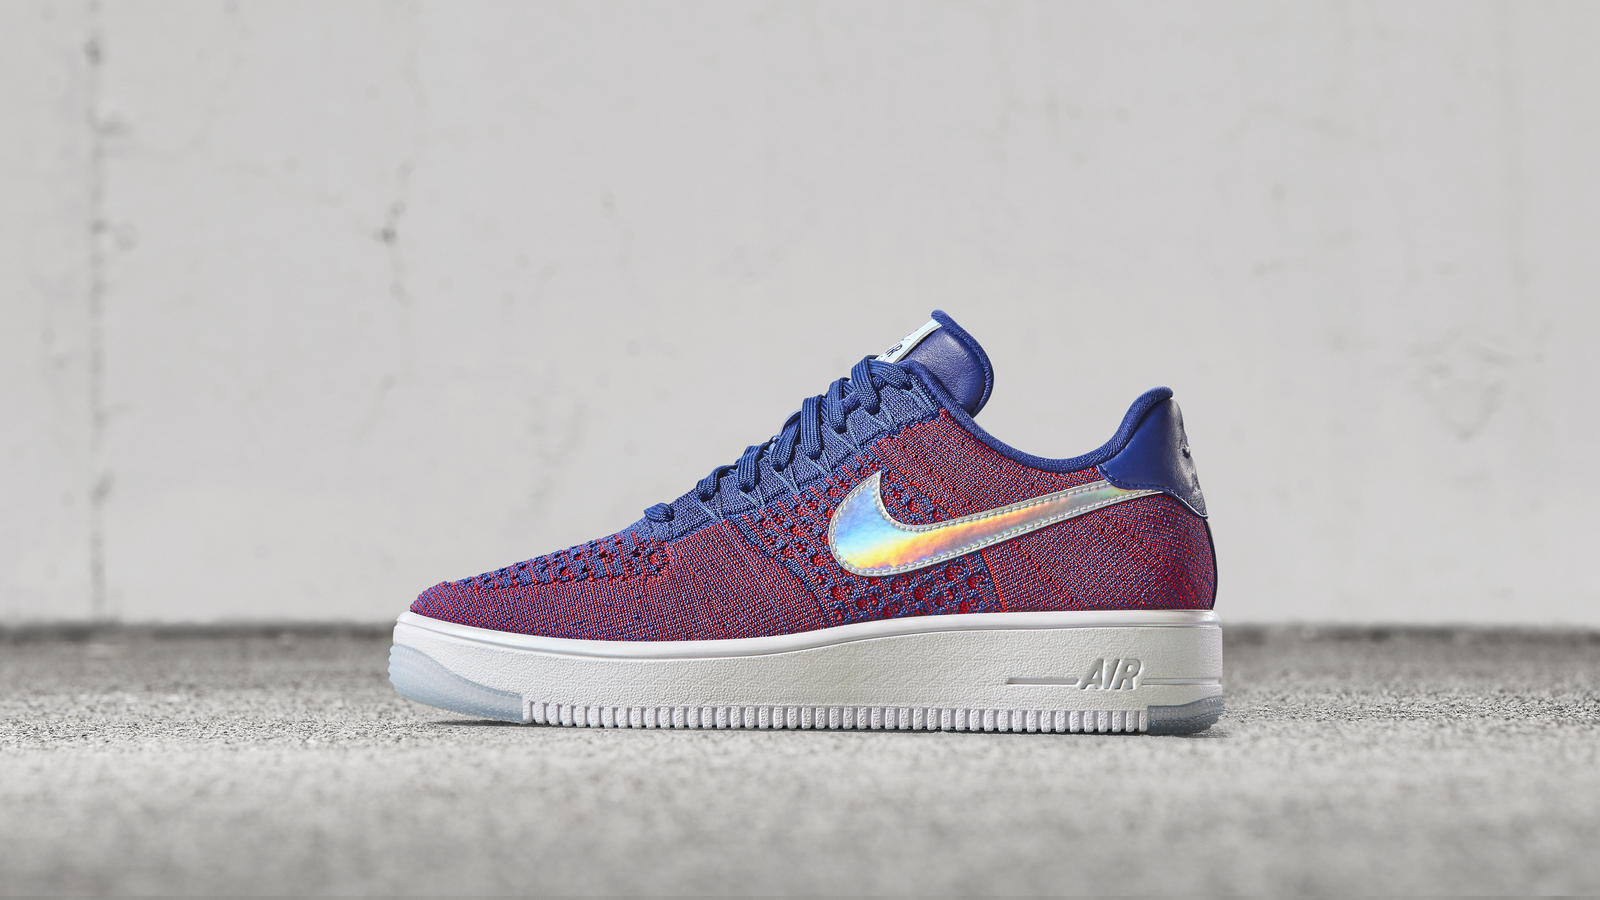 Nike news sneaker feed red wht blue flyknit nsw 2286 hd 1600